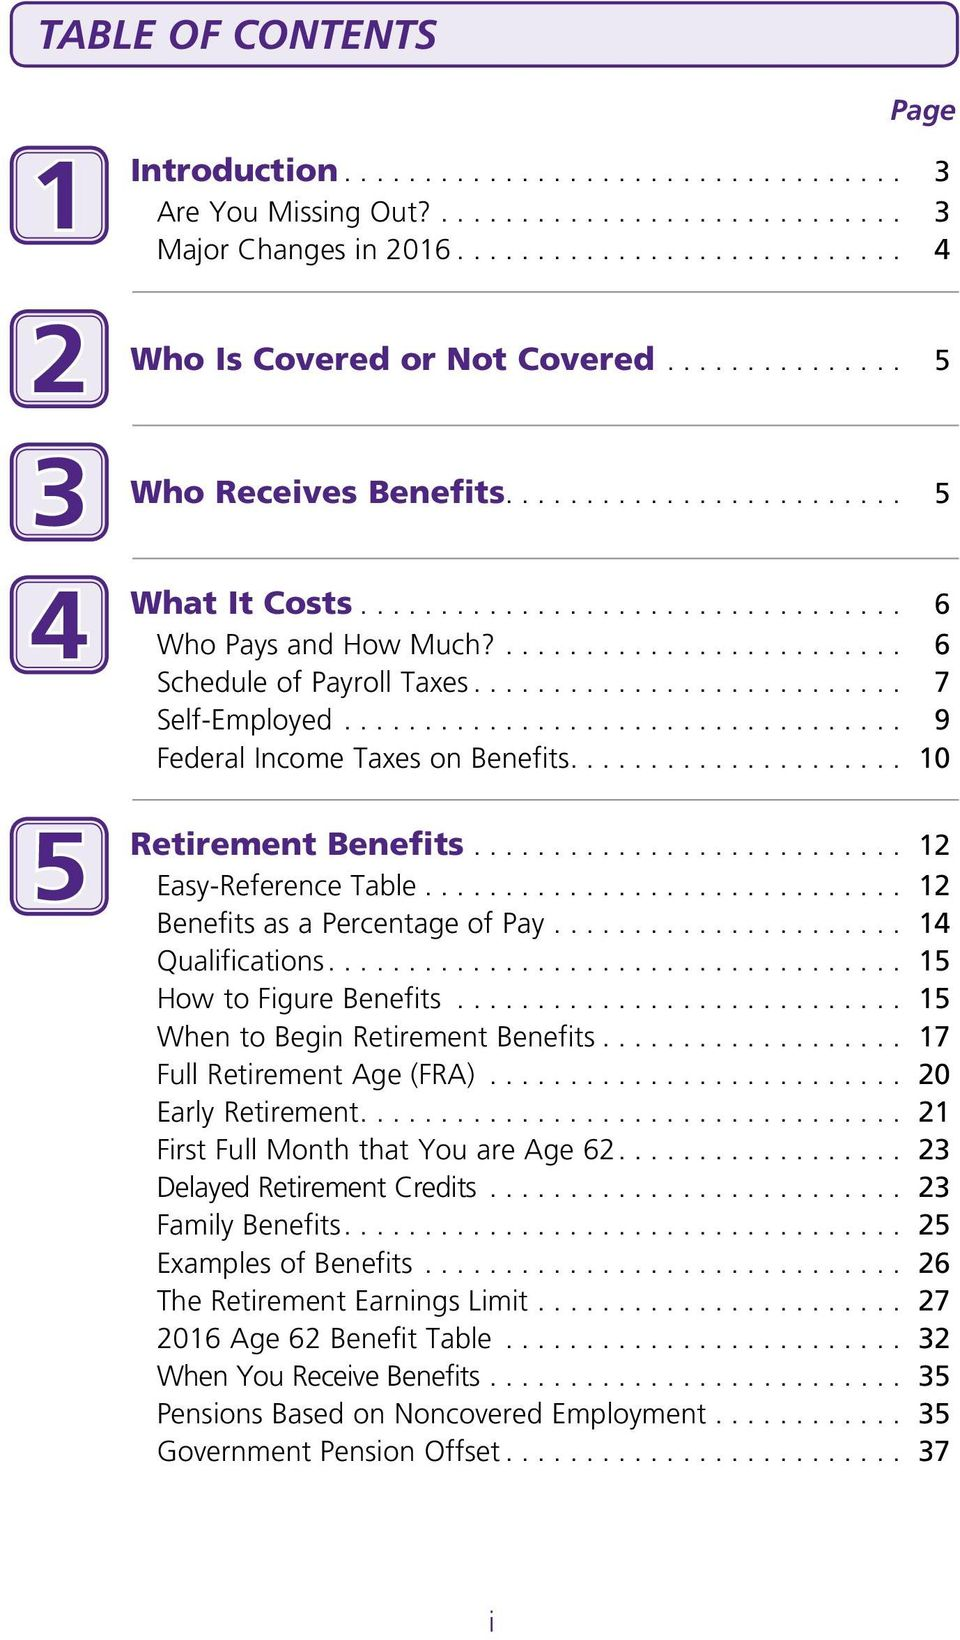 .. 12 Benefits as a Percentage of Pay... 14 Qualifications.... 15 How to Figure Benefits... 15 When to Begin Retirement Benefits... 17 Full Retirement Age (FRA)... 20 Early Retirement.